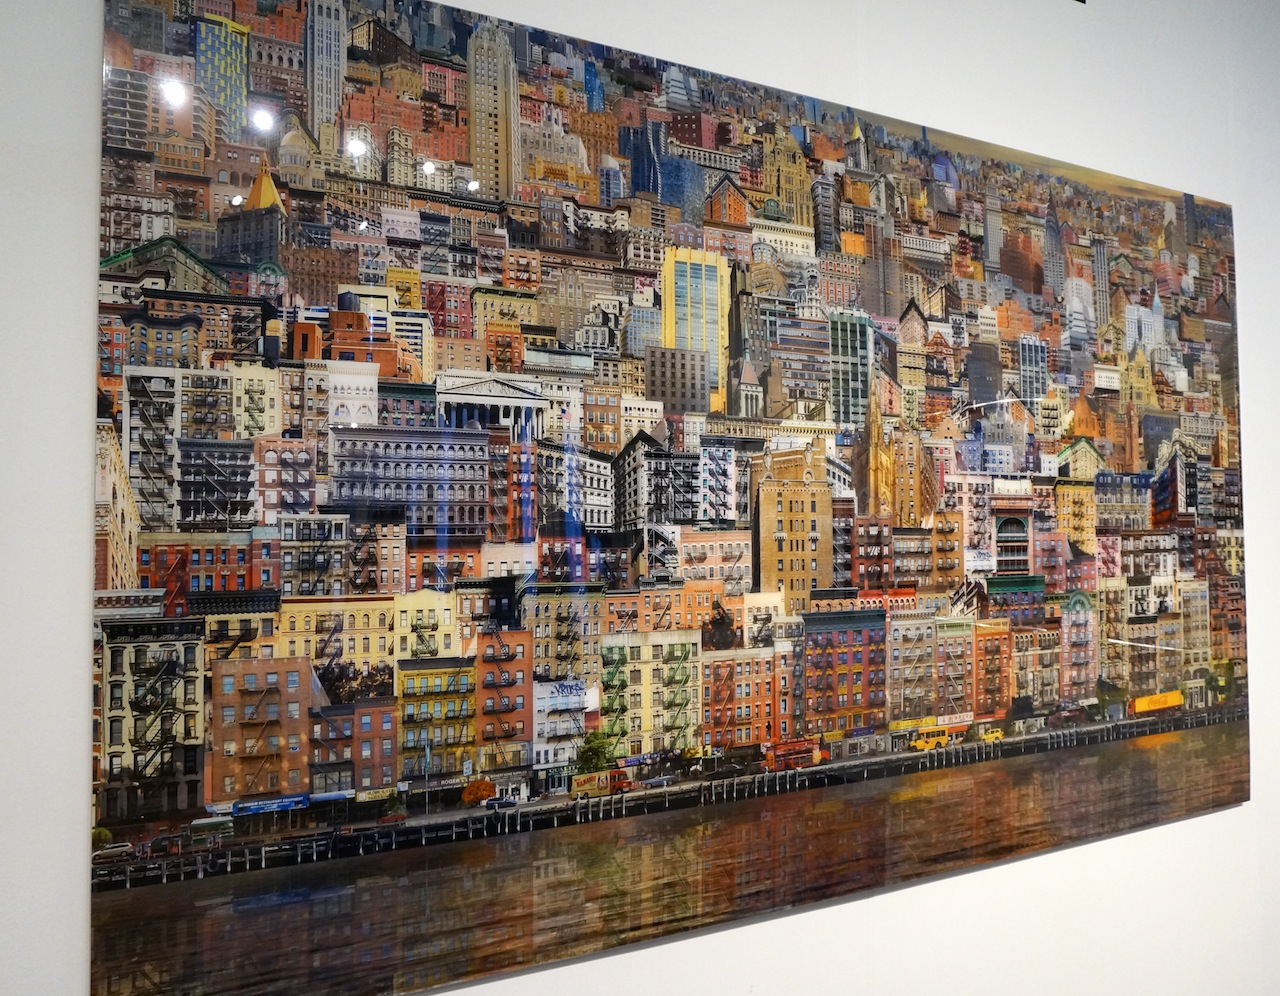 """Jean-François Rauzier, """"Lower East Side Veduta,"""" C-print mounted on aluminum, 58 x 98 in, on view with Waterhouse & Dodd"""